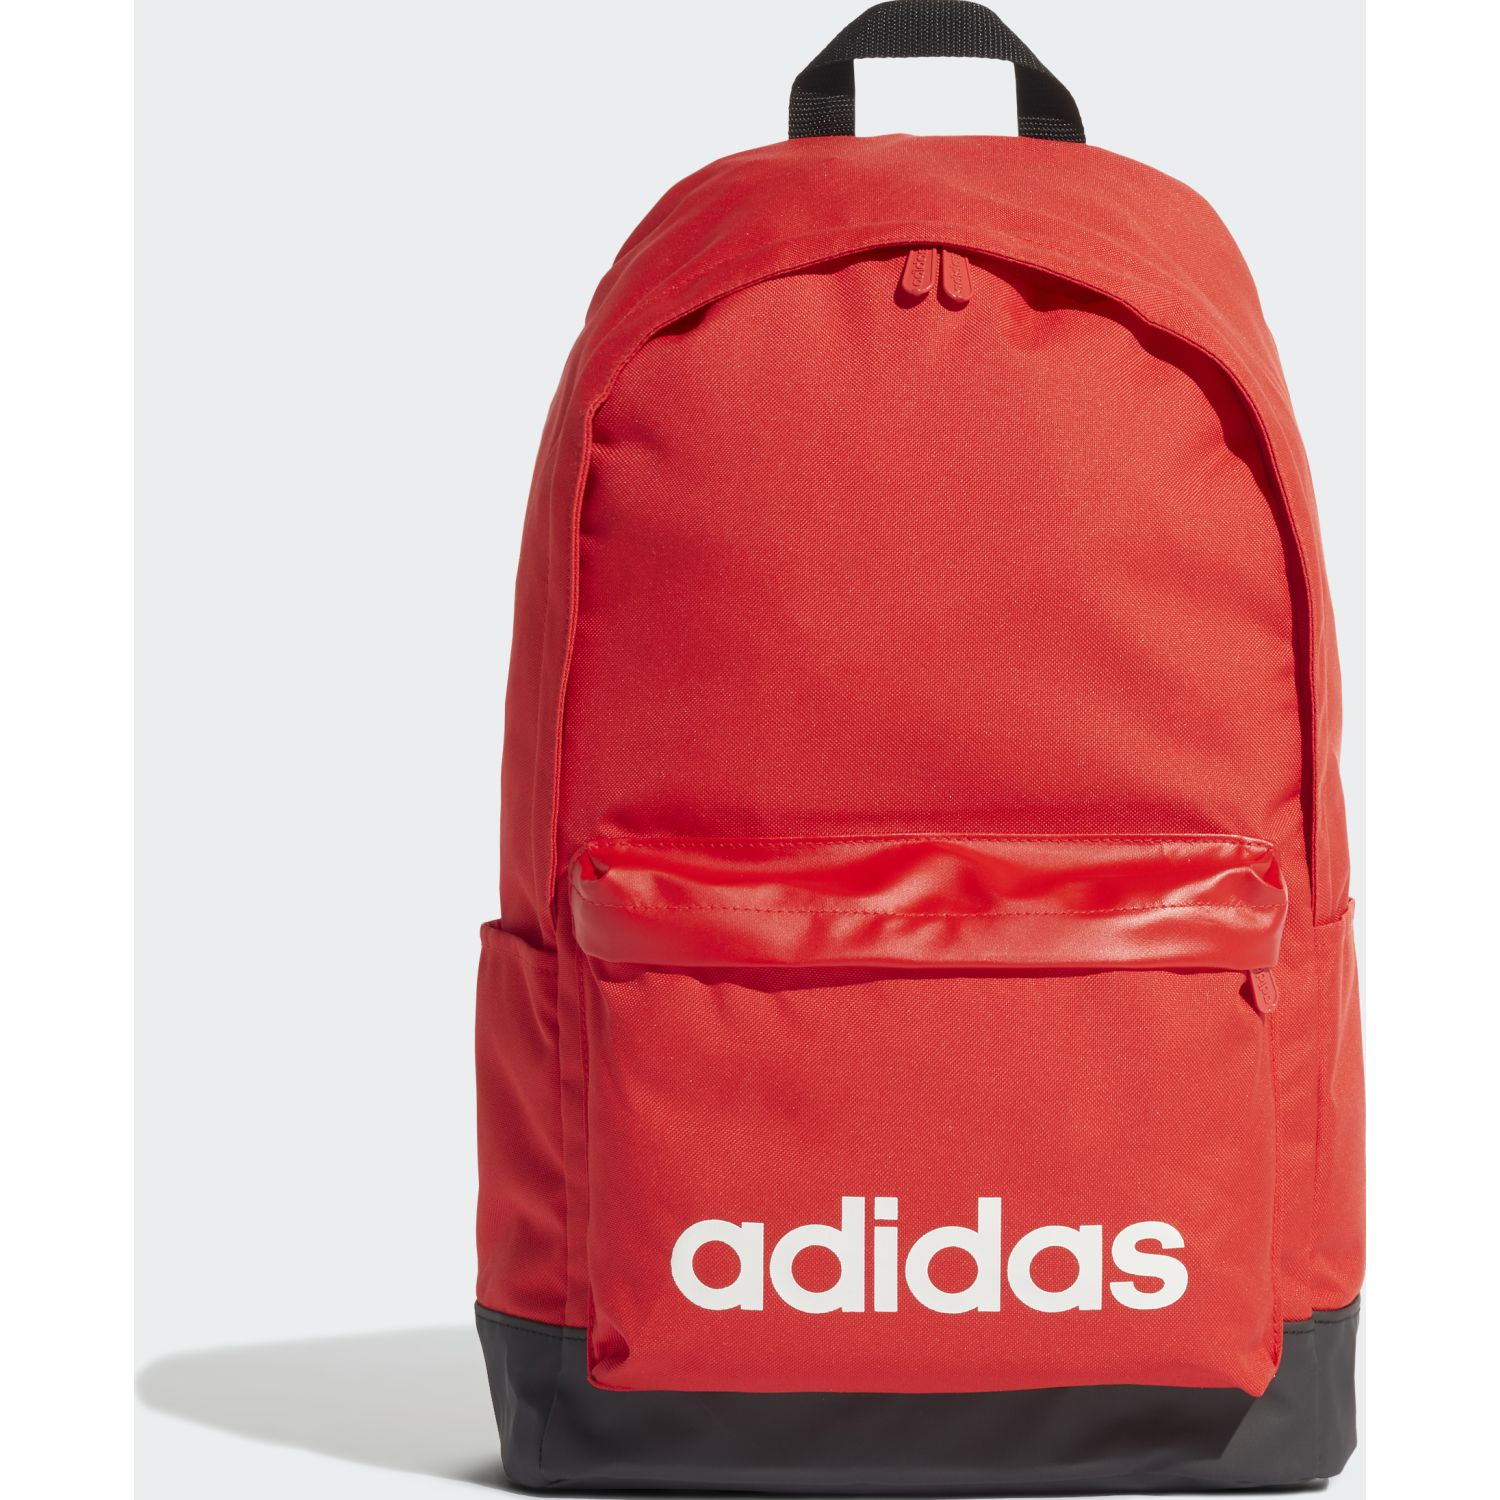 Adidas lin clas bp xl Rojo / negro Mochilas Multipropósitos